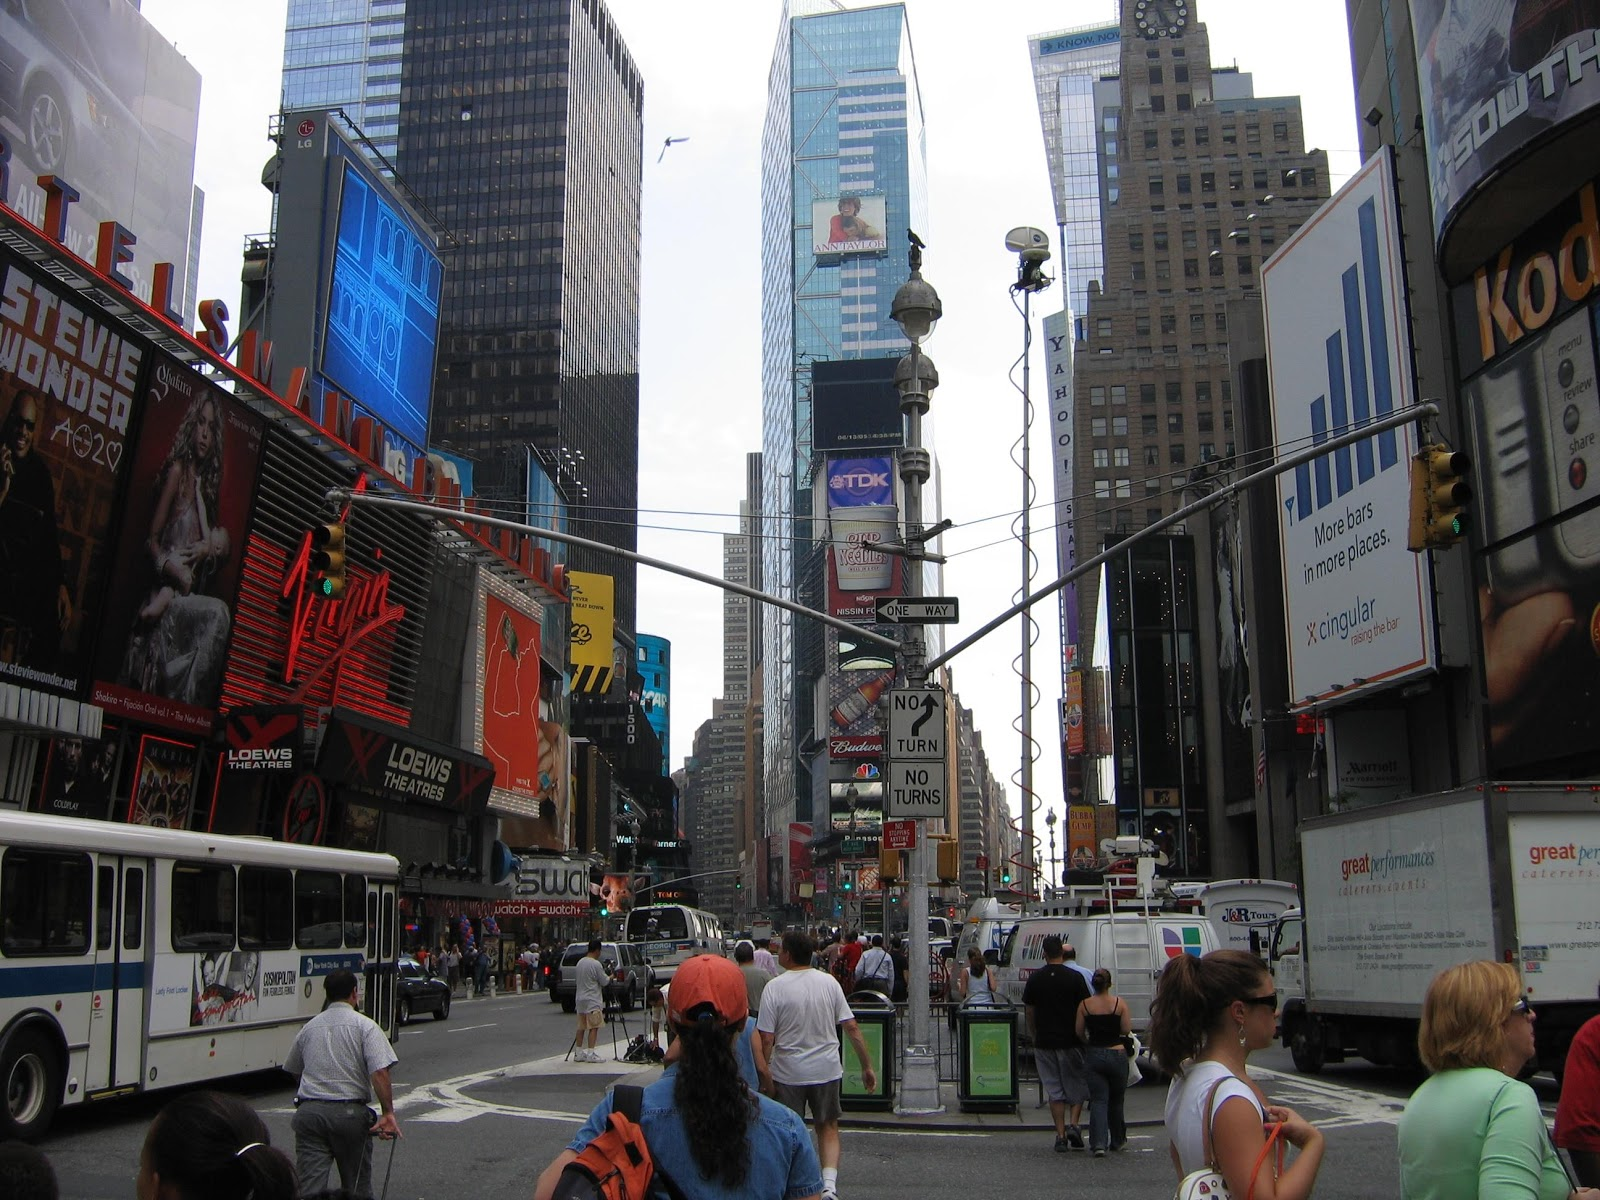 Times square new york most visited spot 2013 travel for Traveling to new york in december